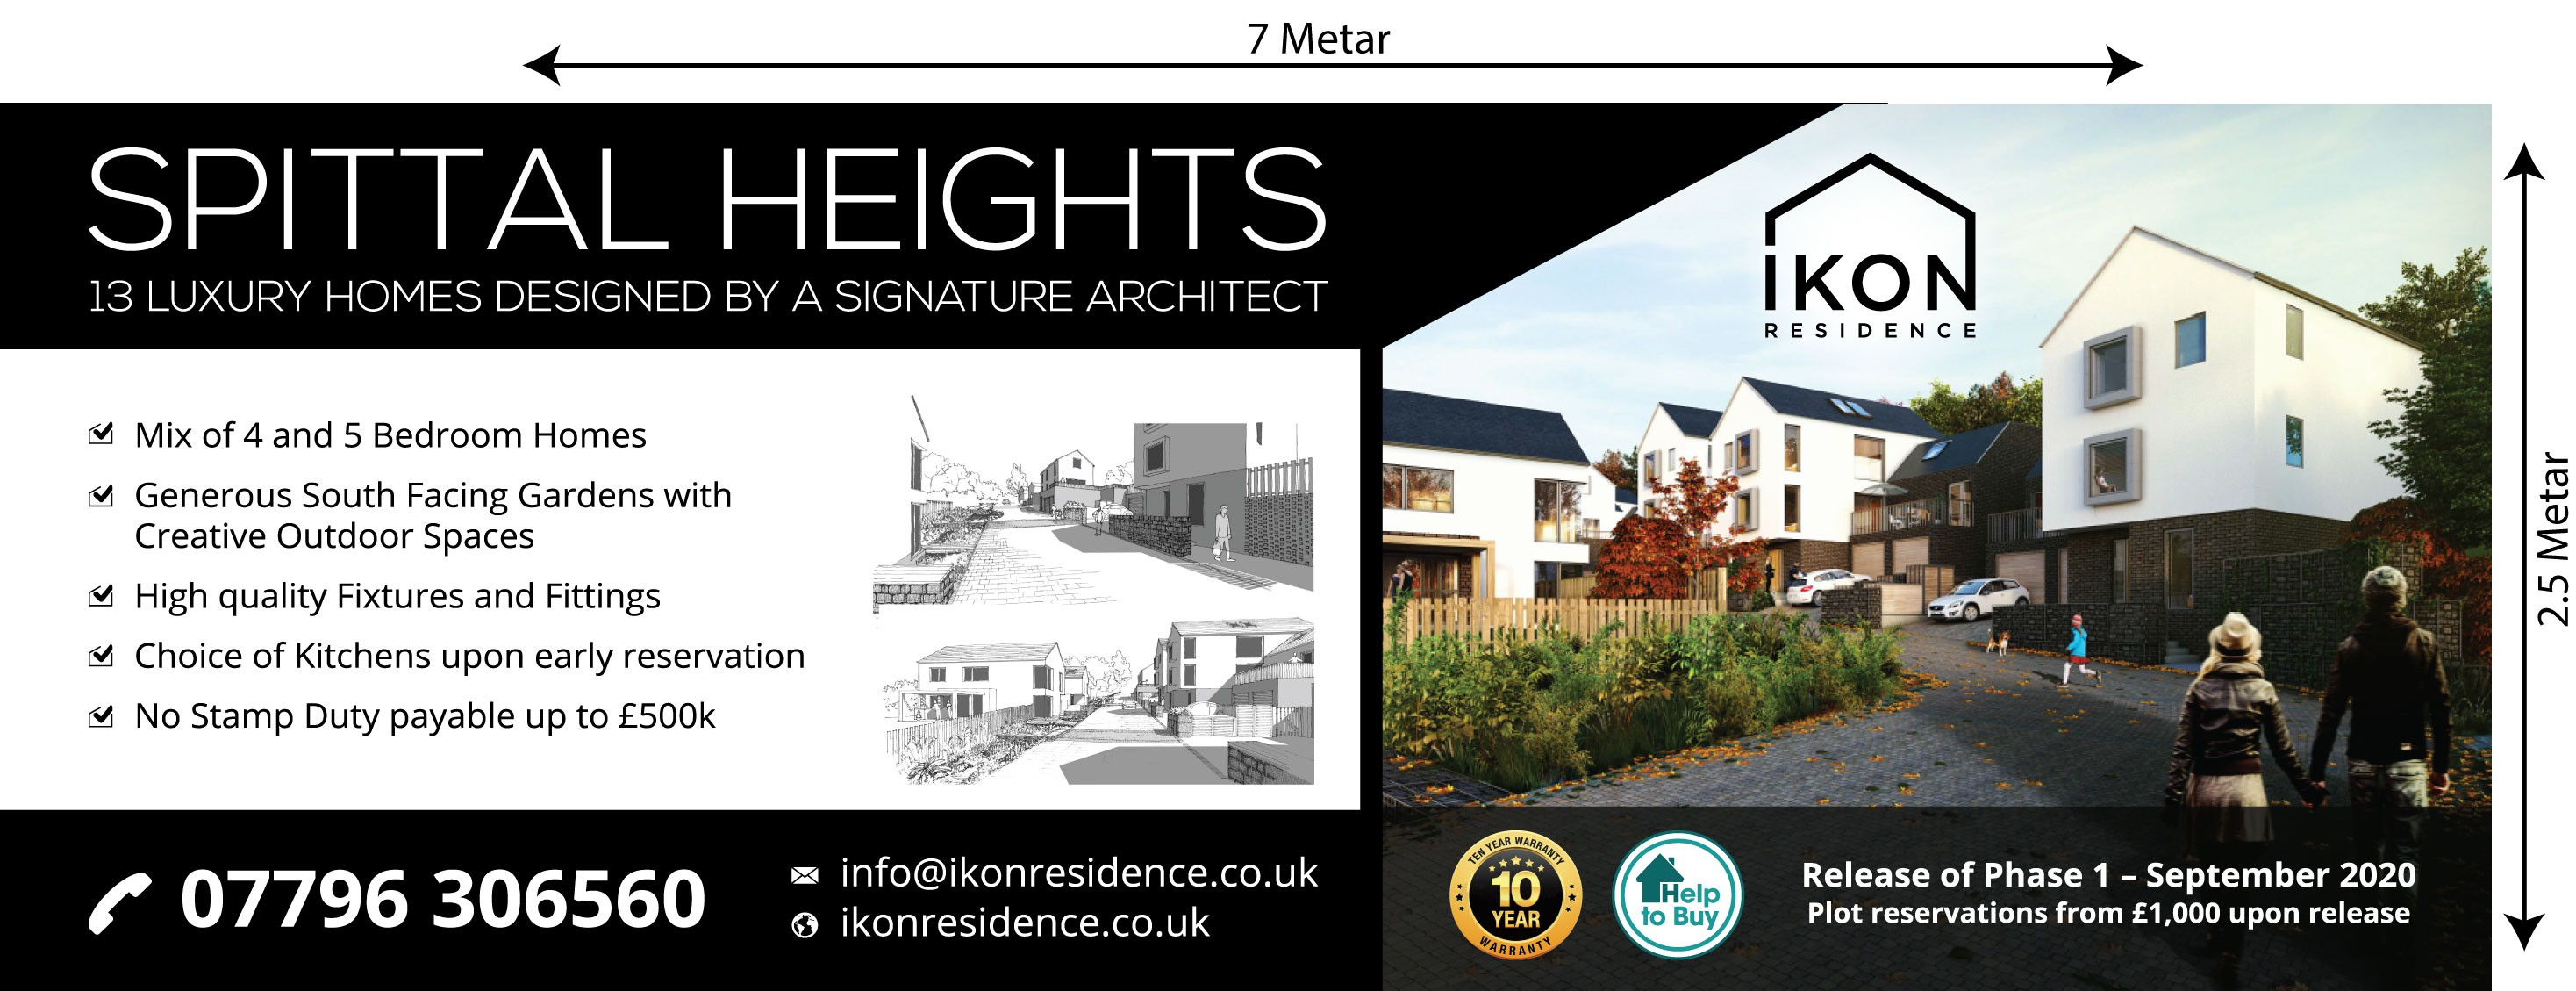 Design a banner advertising a development of 13 luxury homes